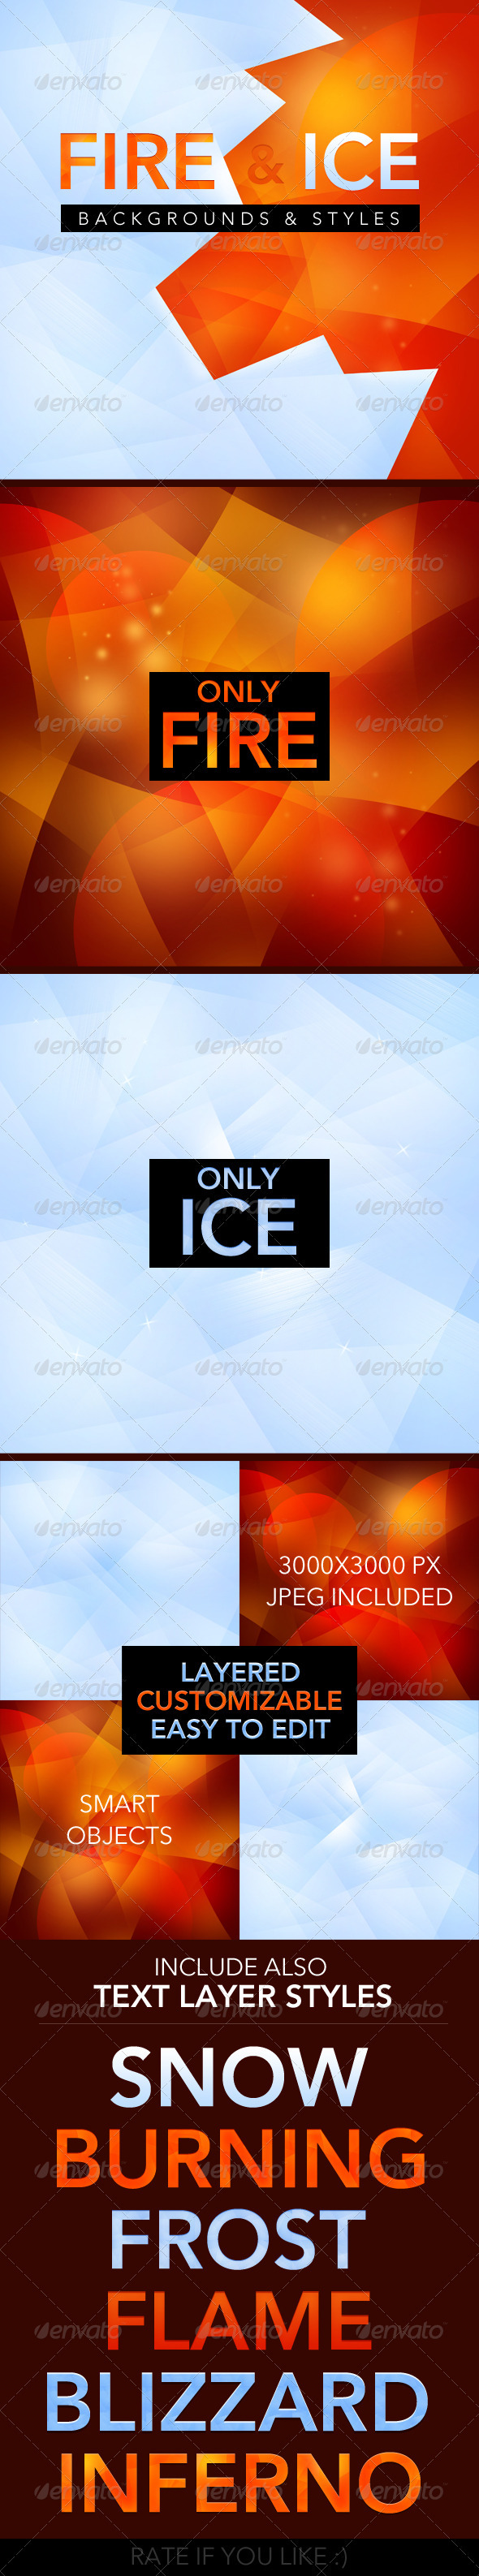 Fire and Ice backgrounds - text styles - Backgrounds Graphics